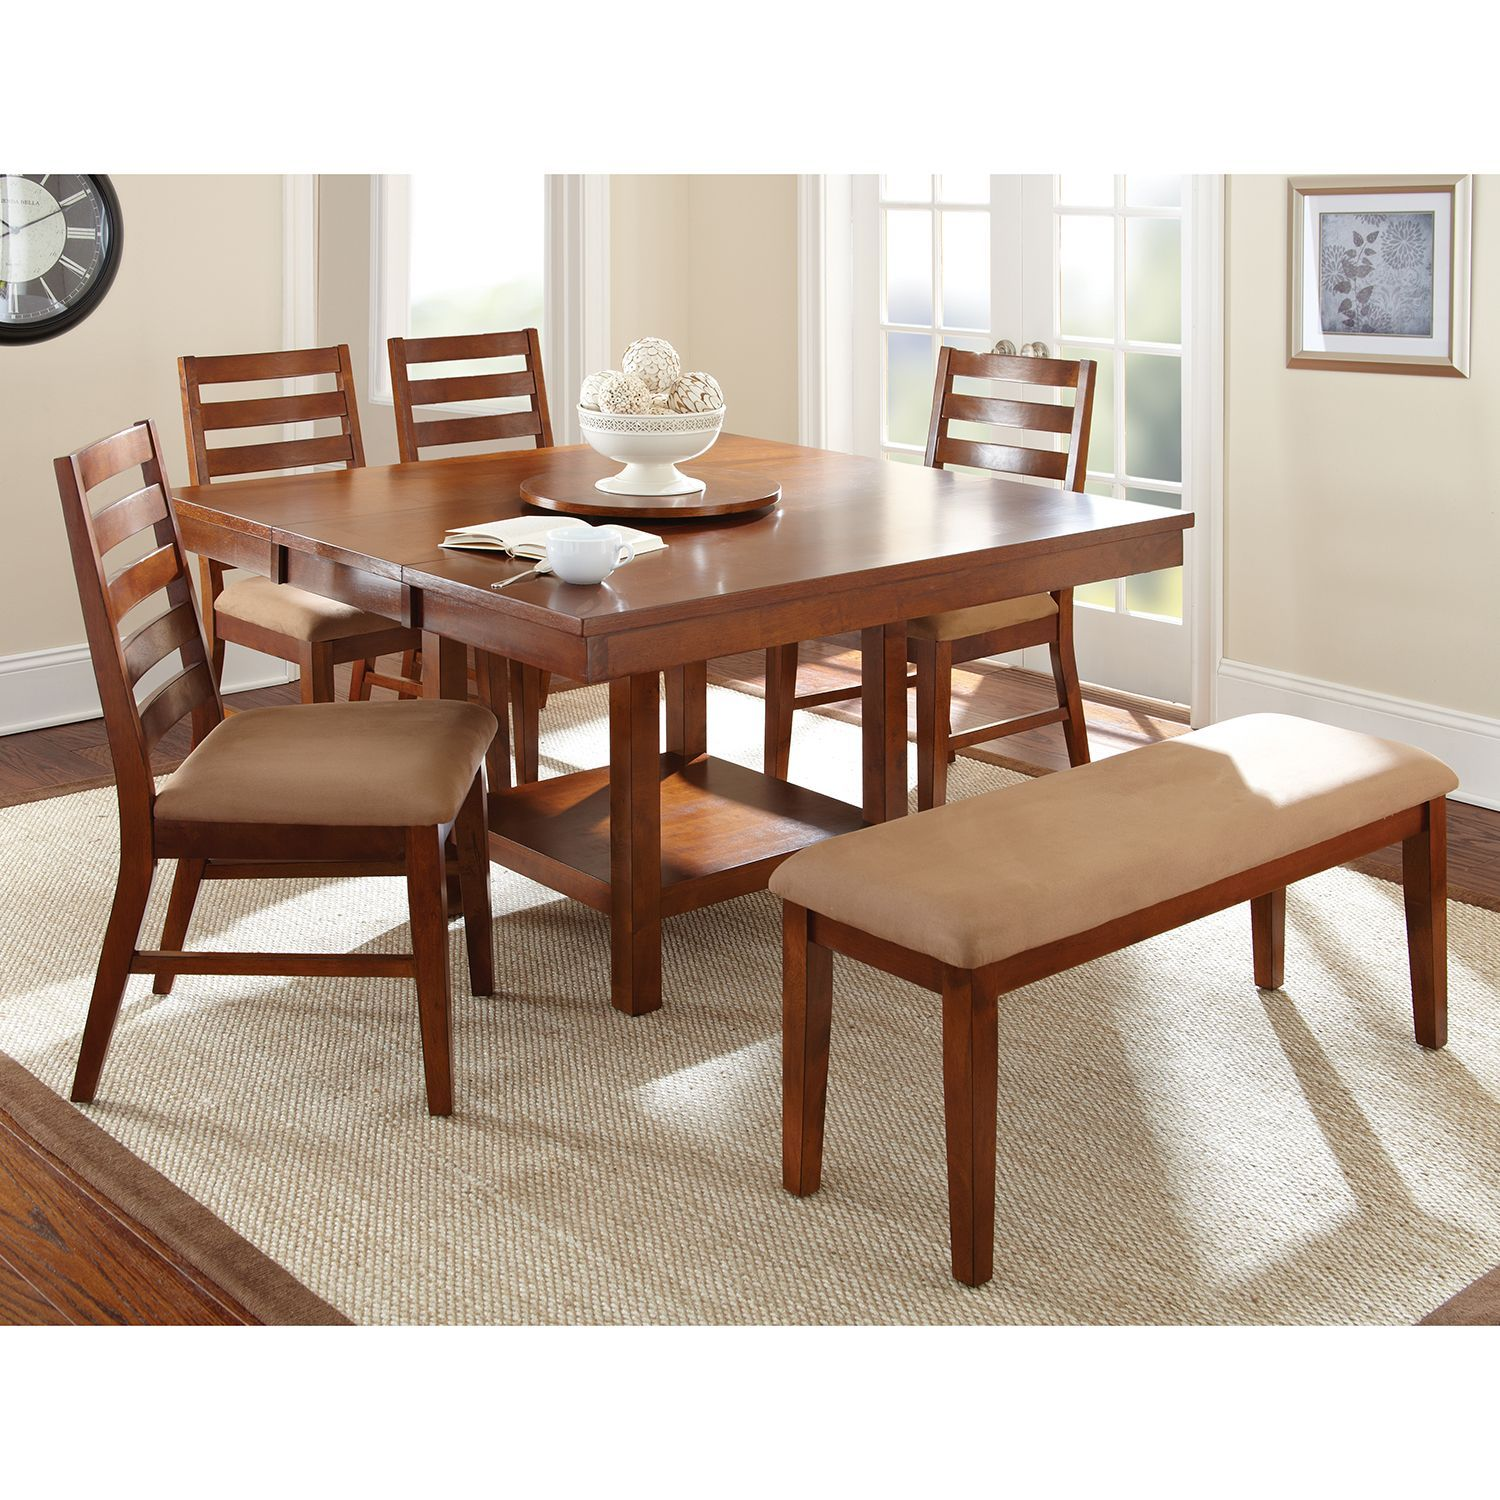 Emerson Dining Set 6 Pc Dining Table With Leaf Side Chairs